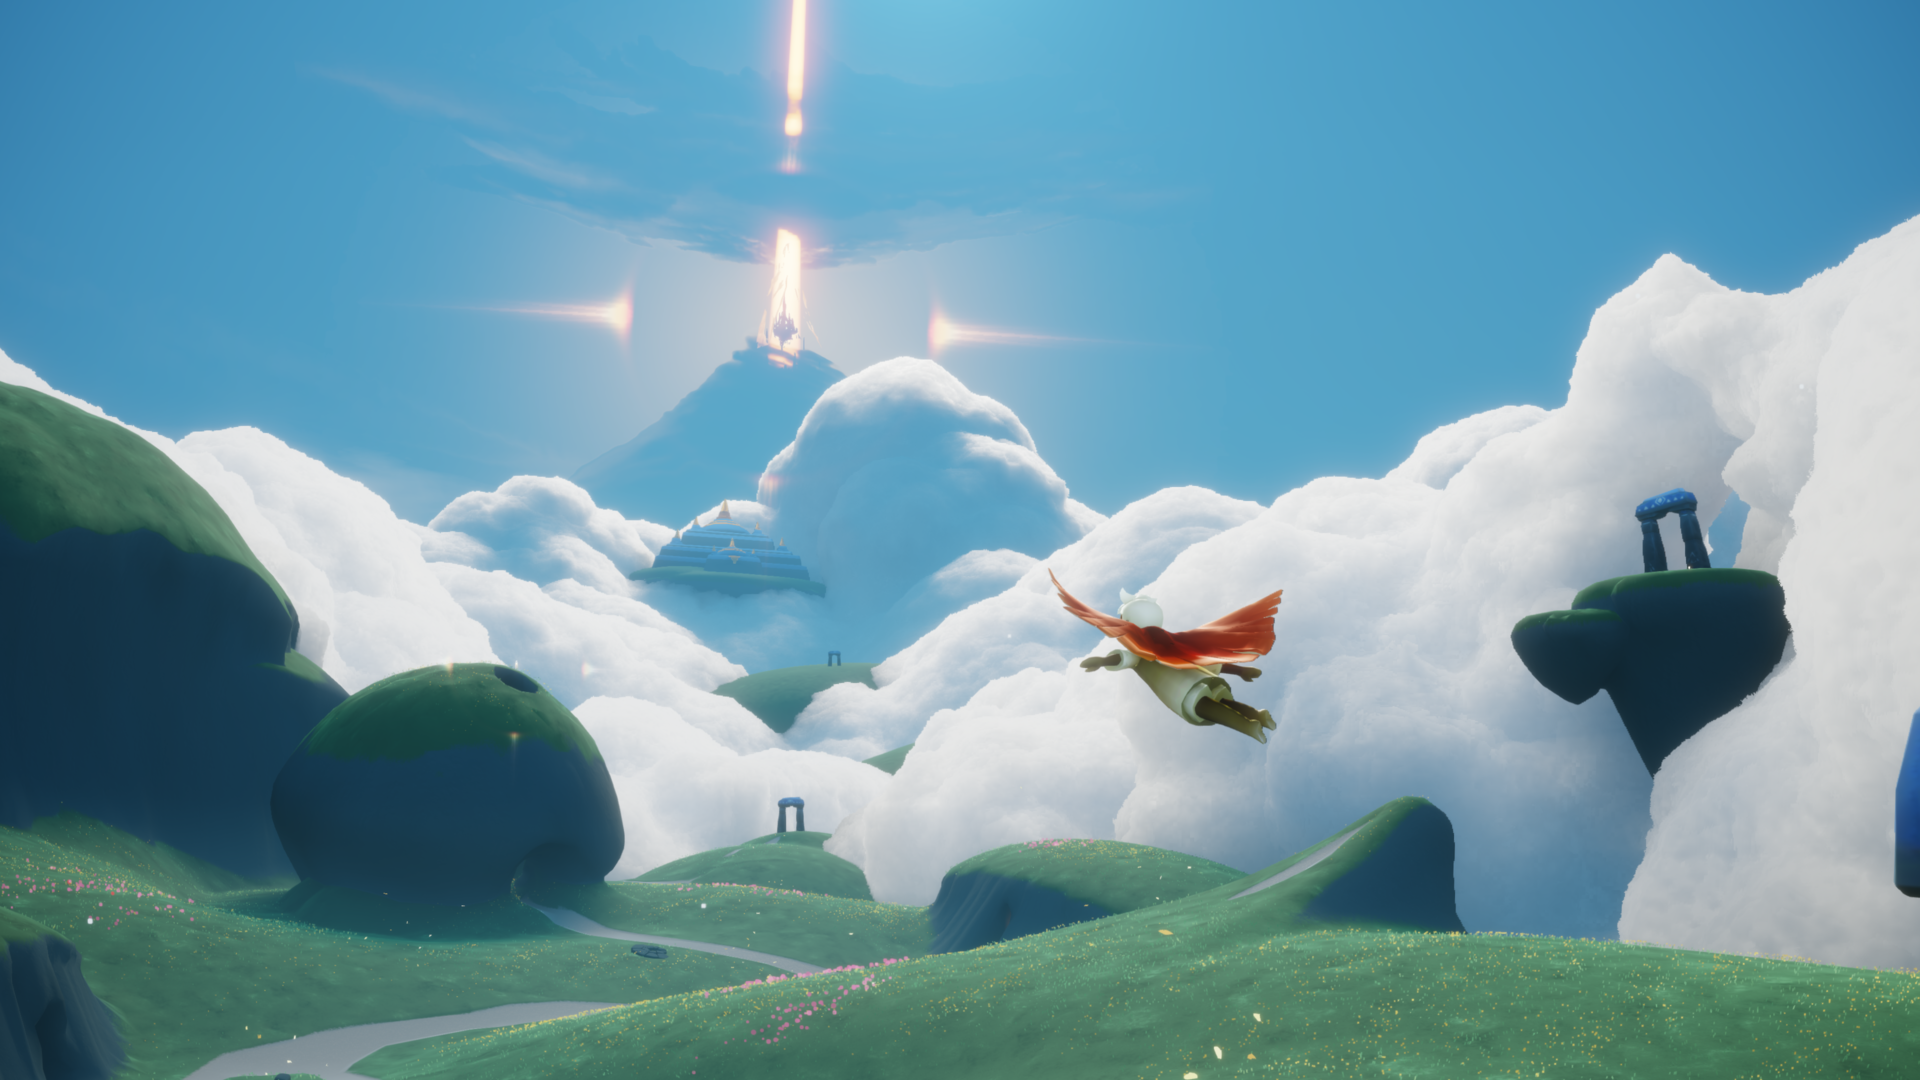 Sky: Children Of The Light – Atlas Chen Discusses thatgamecompany's Latest Release